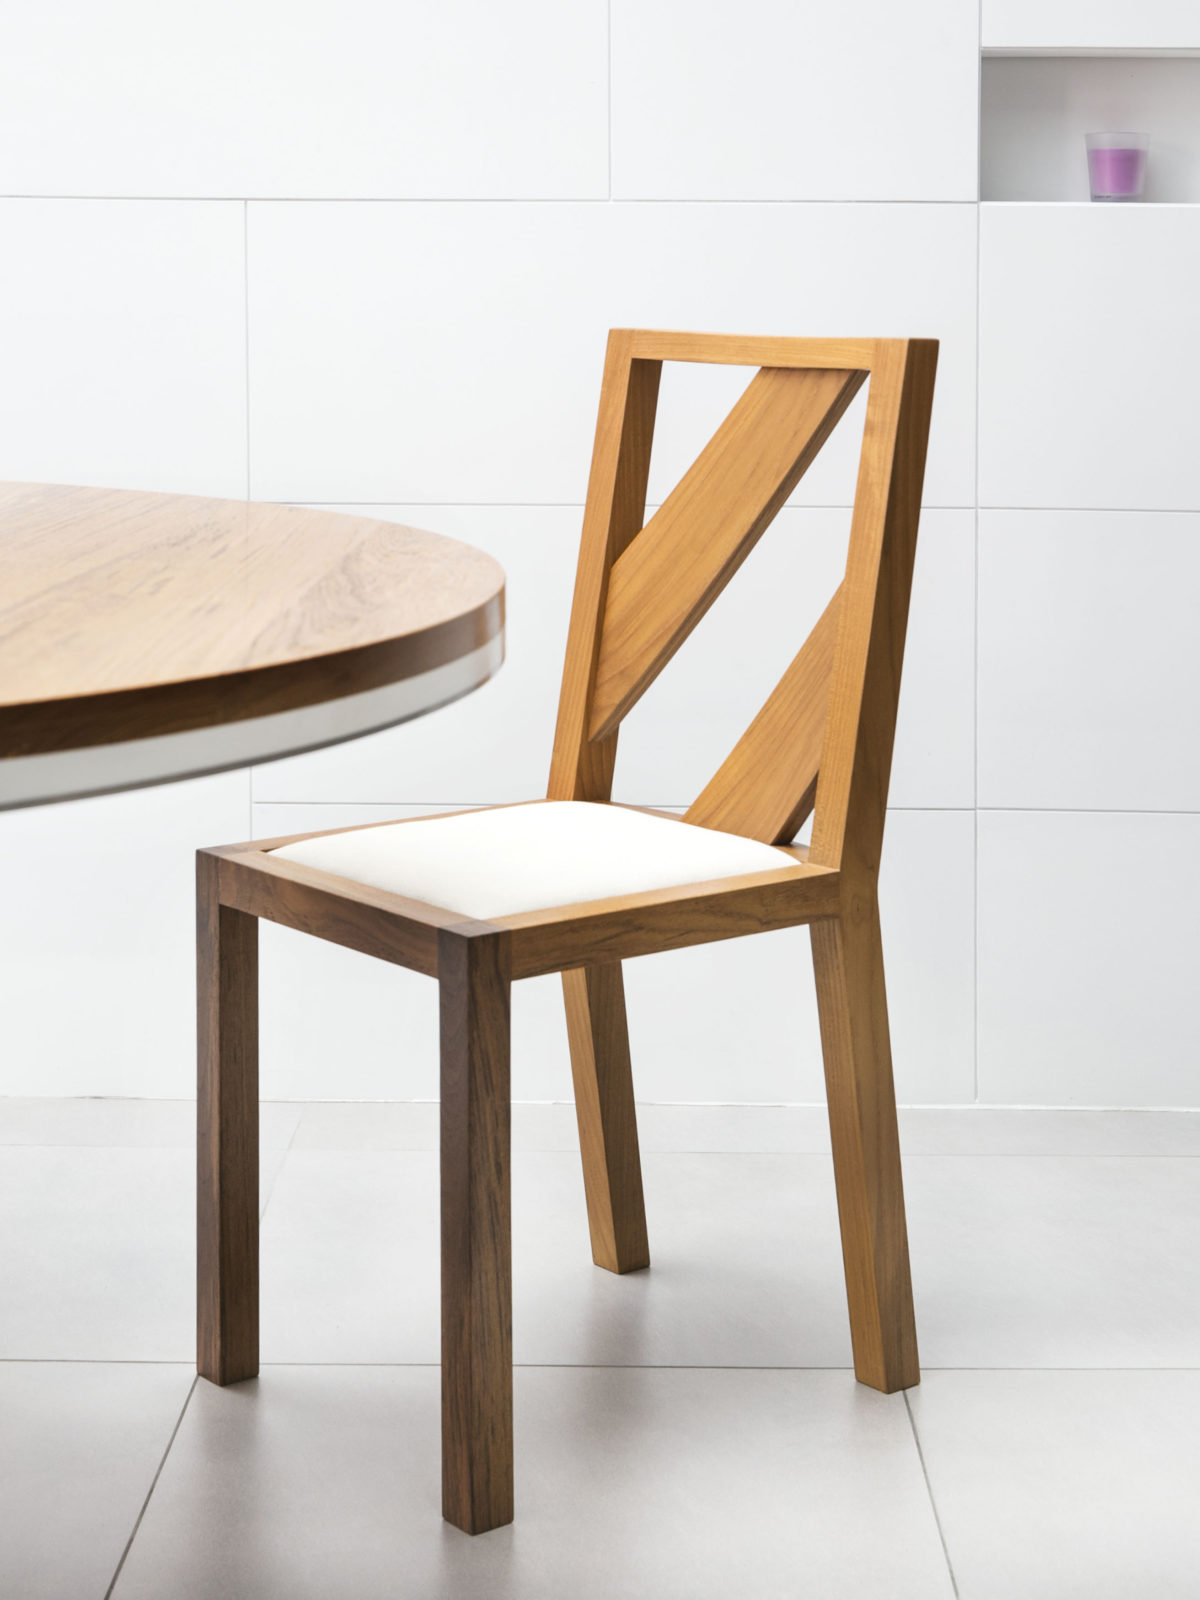 Solid teak chair with teak back strips and fabric seat